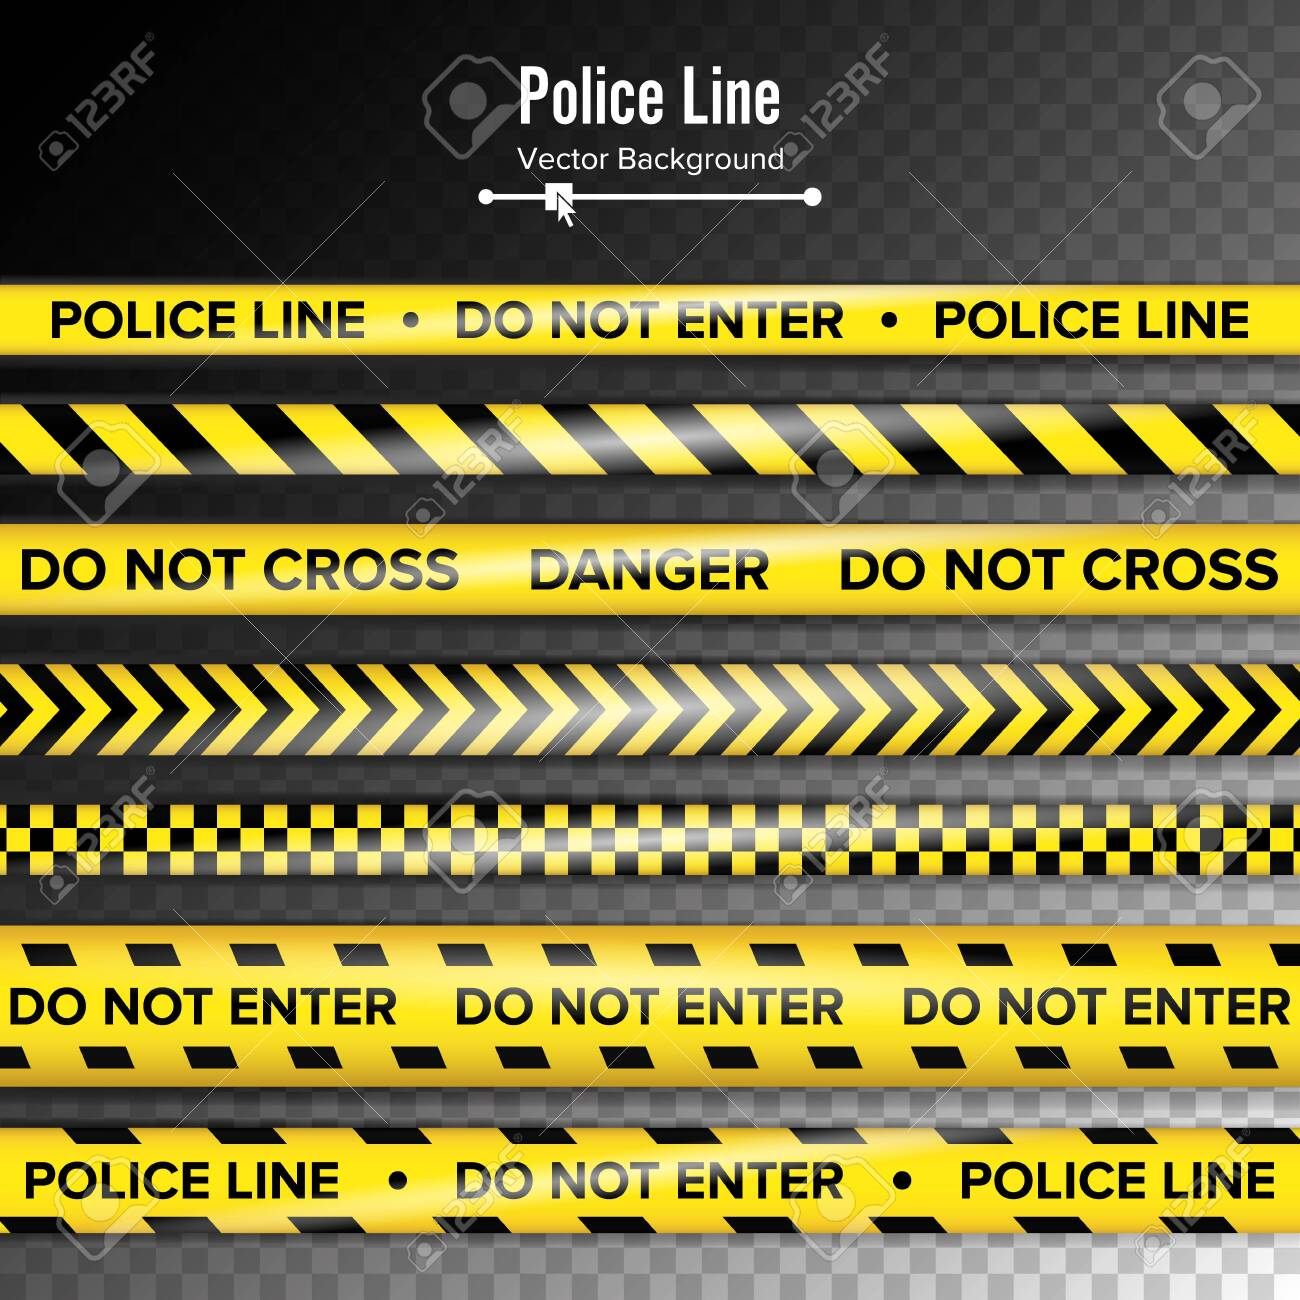 Yellow With Black Police Line. Do Not Enter, Danger. Security Quarantine Tapes. Isolated On Background. - 128543325